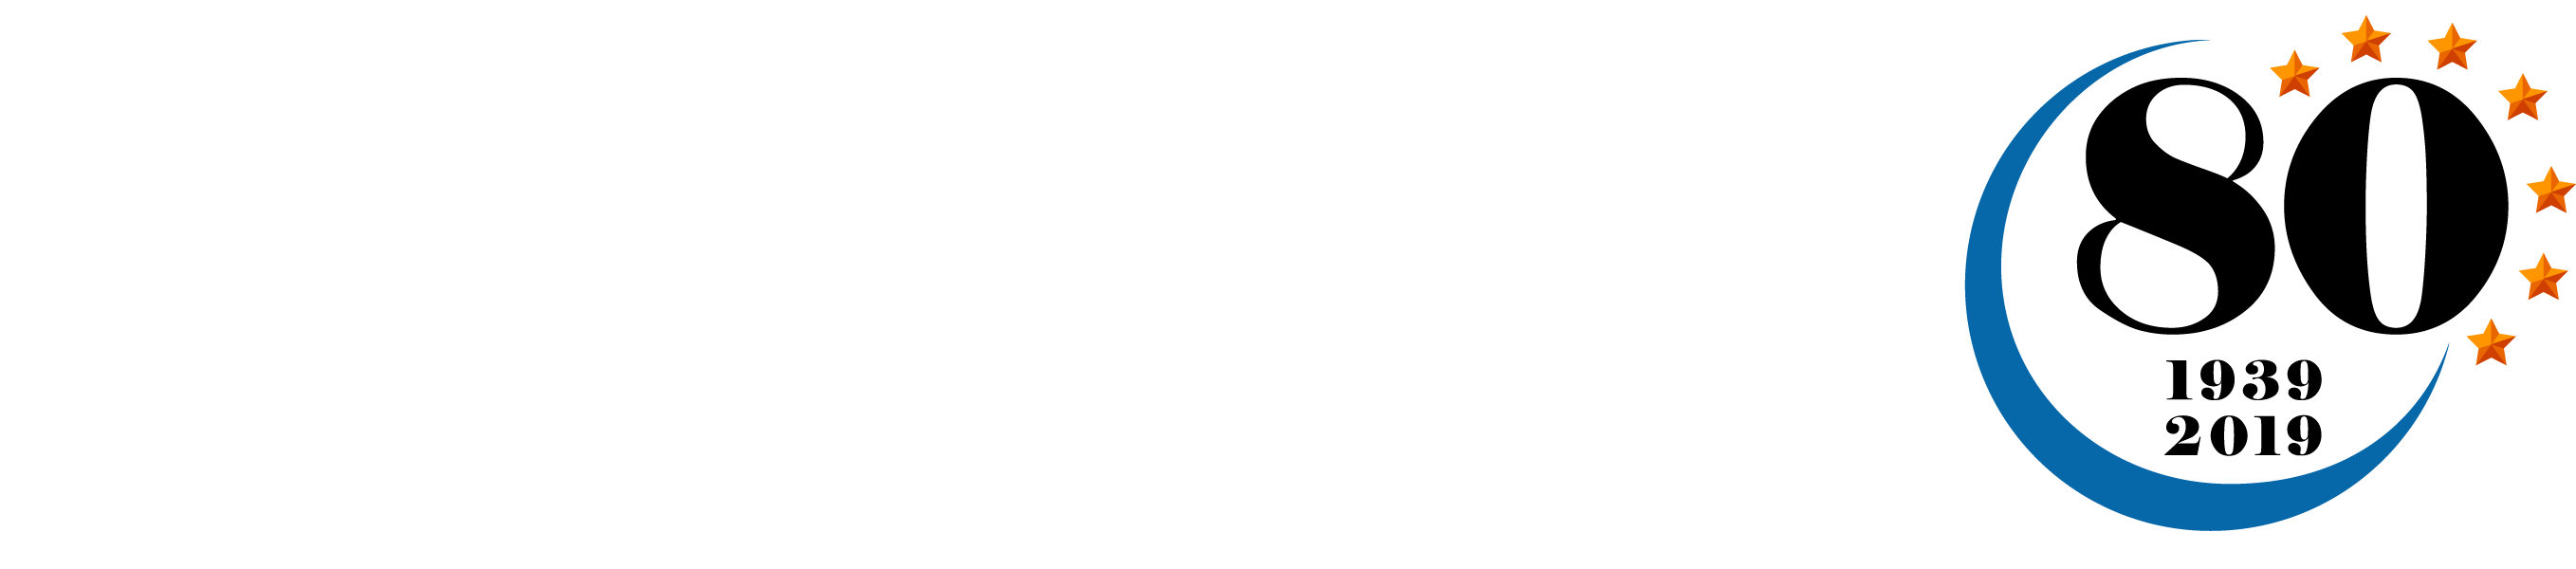 S&O Grimstad